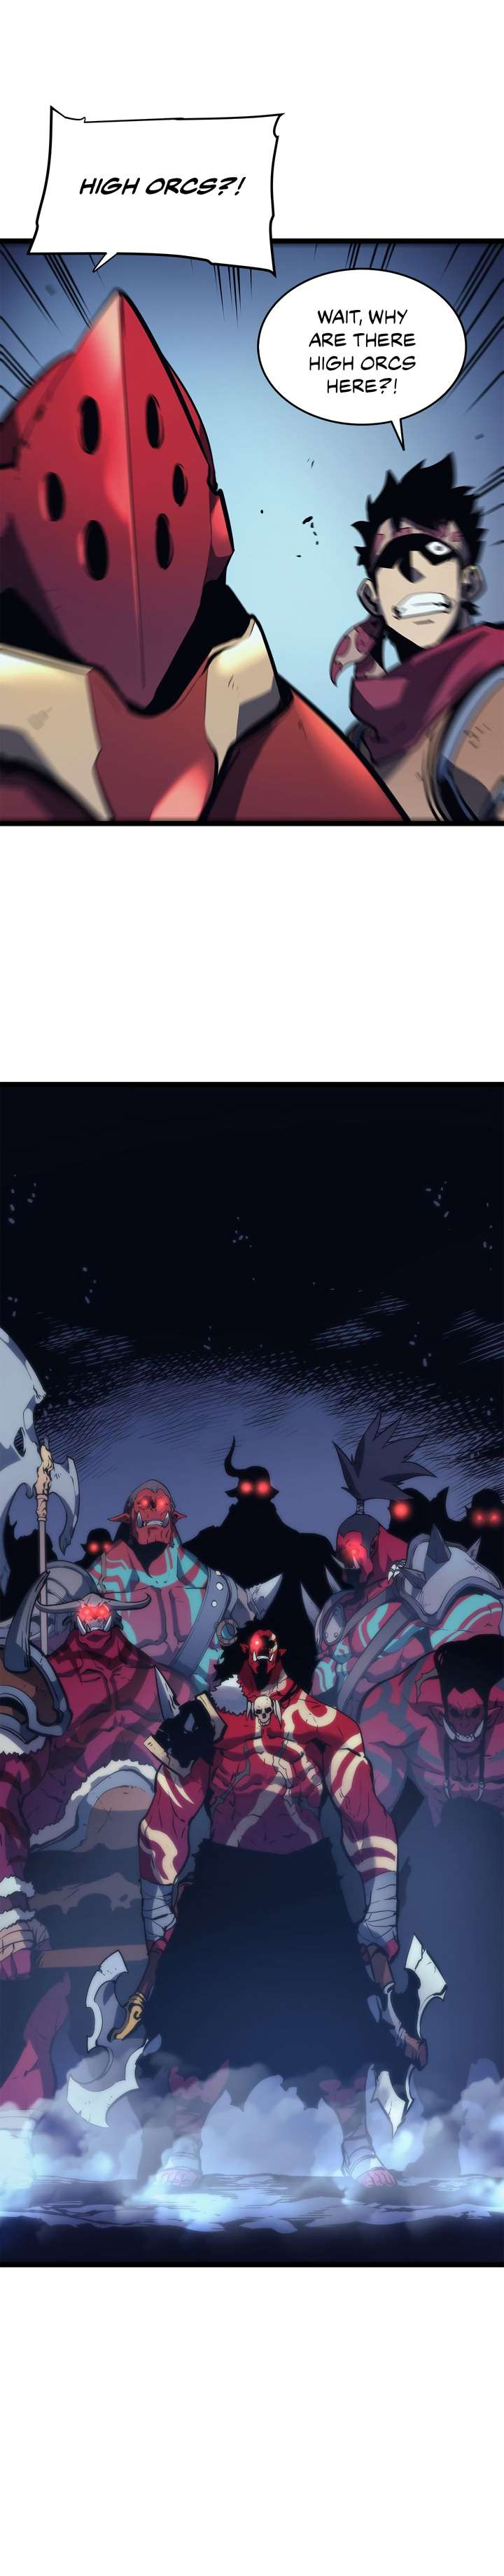 Solo Leveling Chapter 69 Page 13